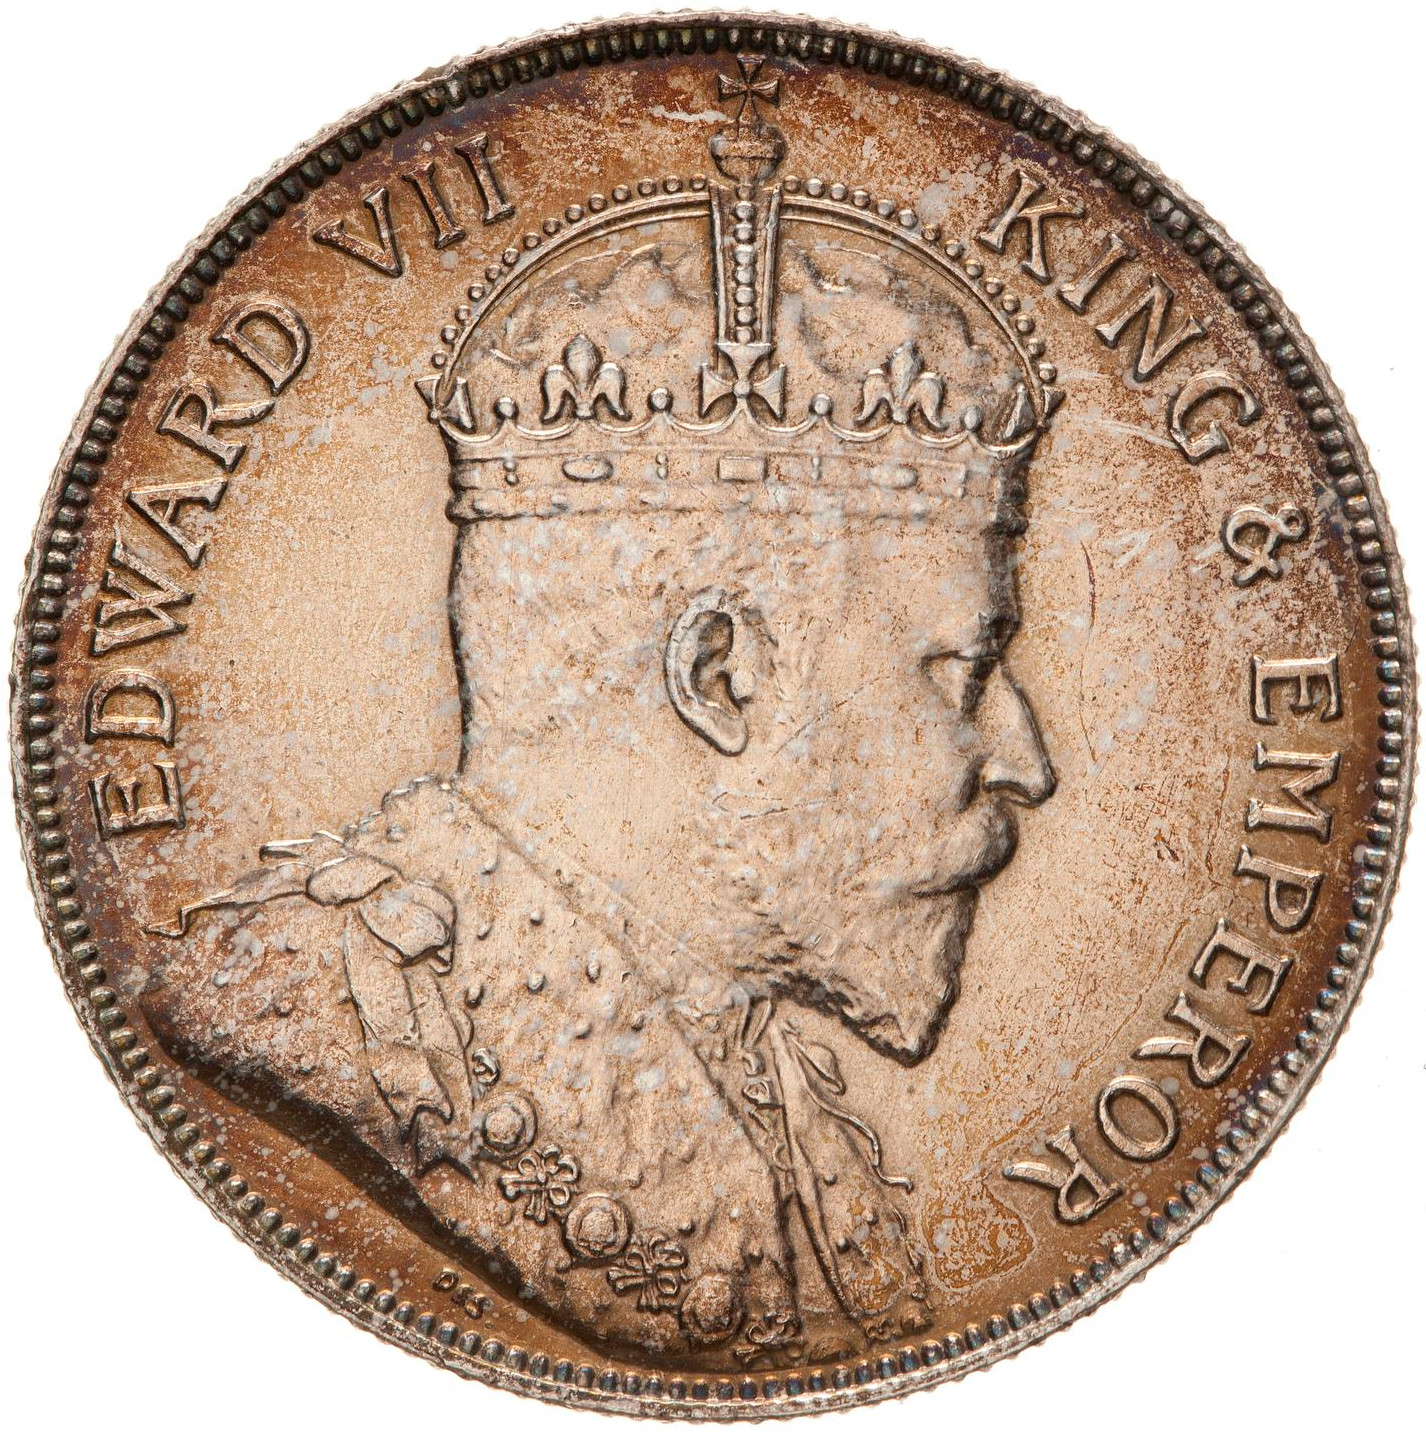 Fifty Cents: Photo Coin - 50 Cents, British Honduras (Belize), 1906